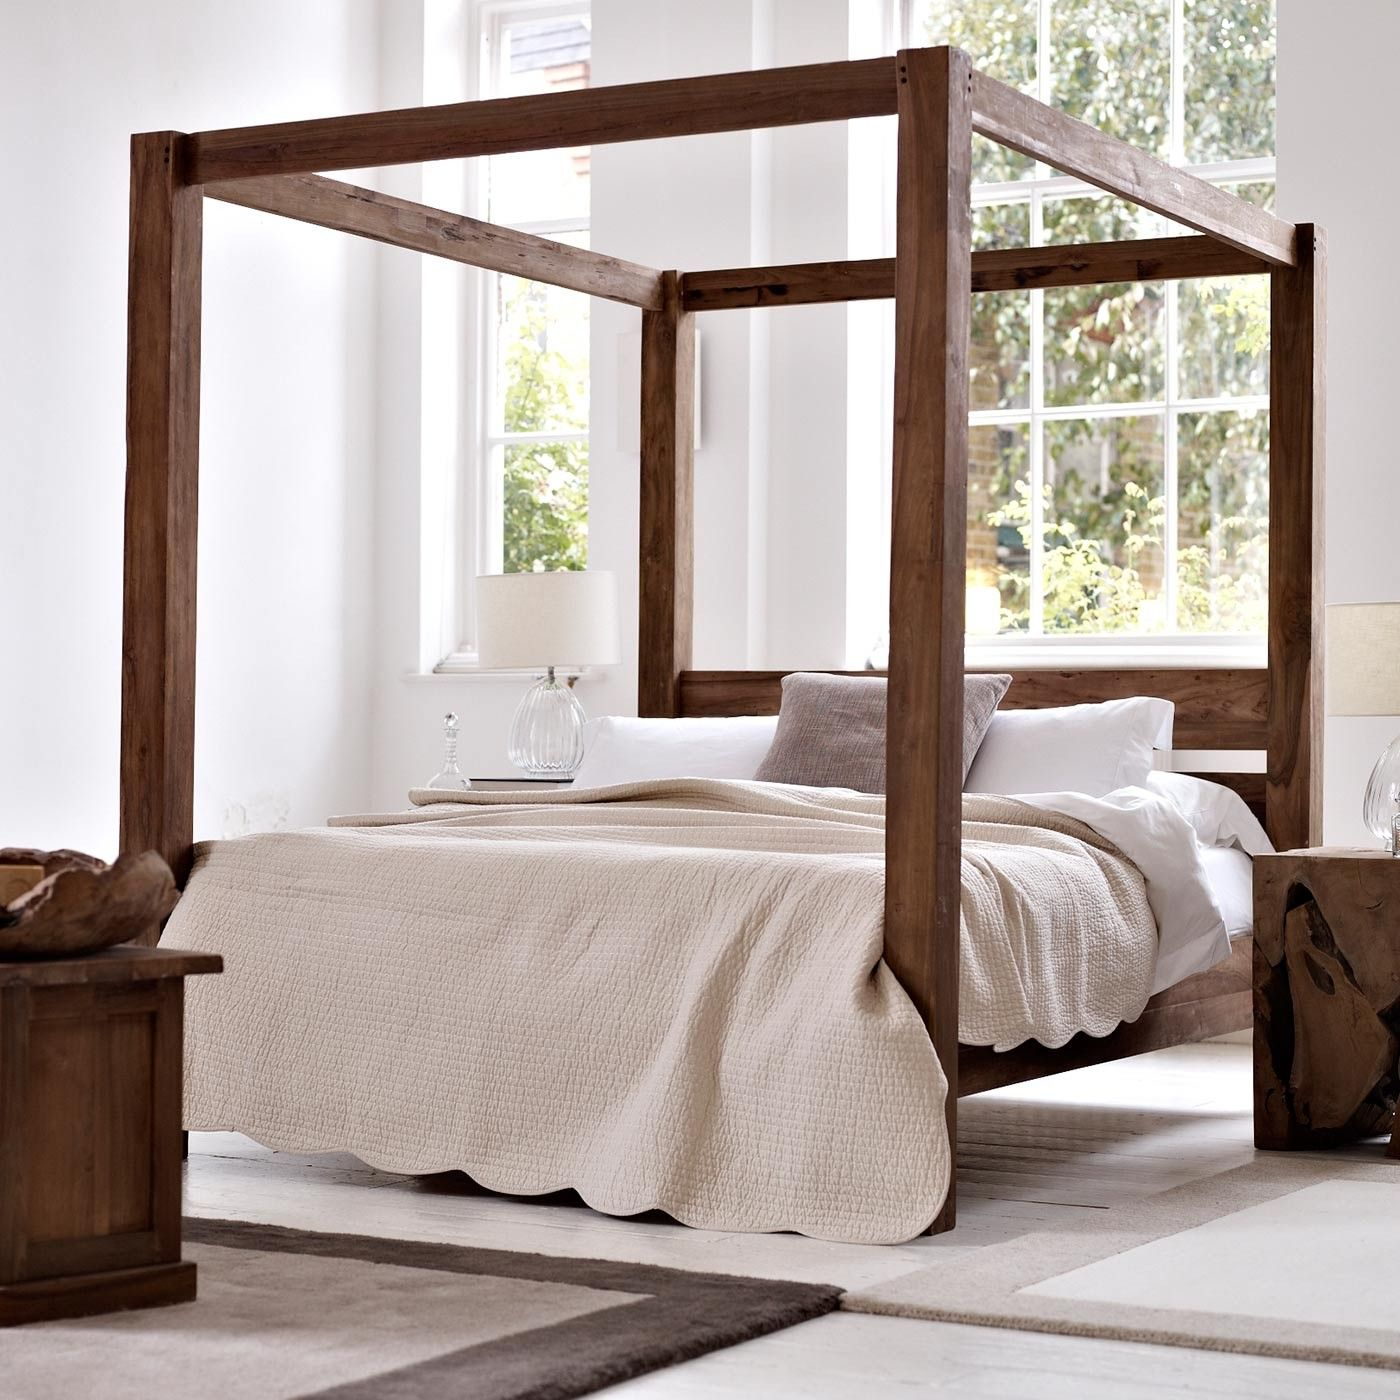 Four Poster Bed New House Bed Four Poster Bed Bedroom